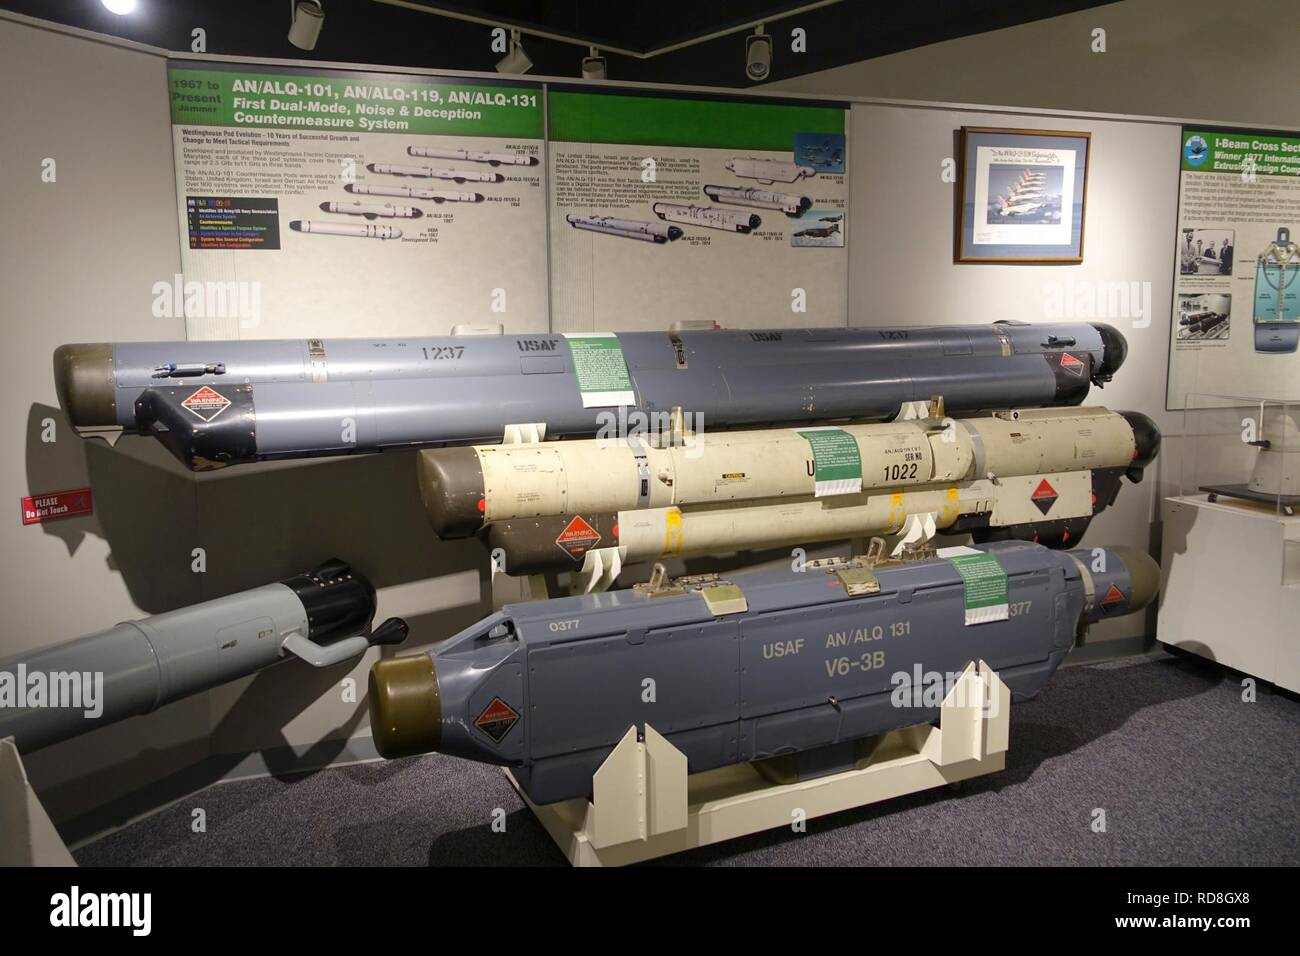 AN-ALQ-101, AN-ALQ-119, and AN-ALQ-131 dual-mode, noise and deception countermeasure systems - - Stock Image